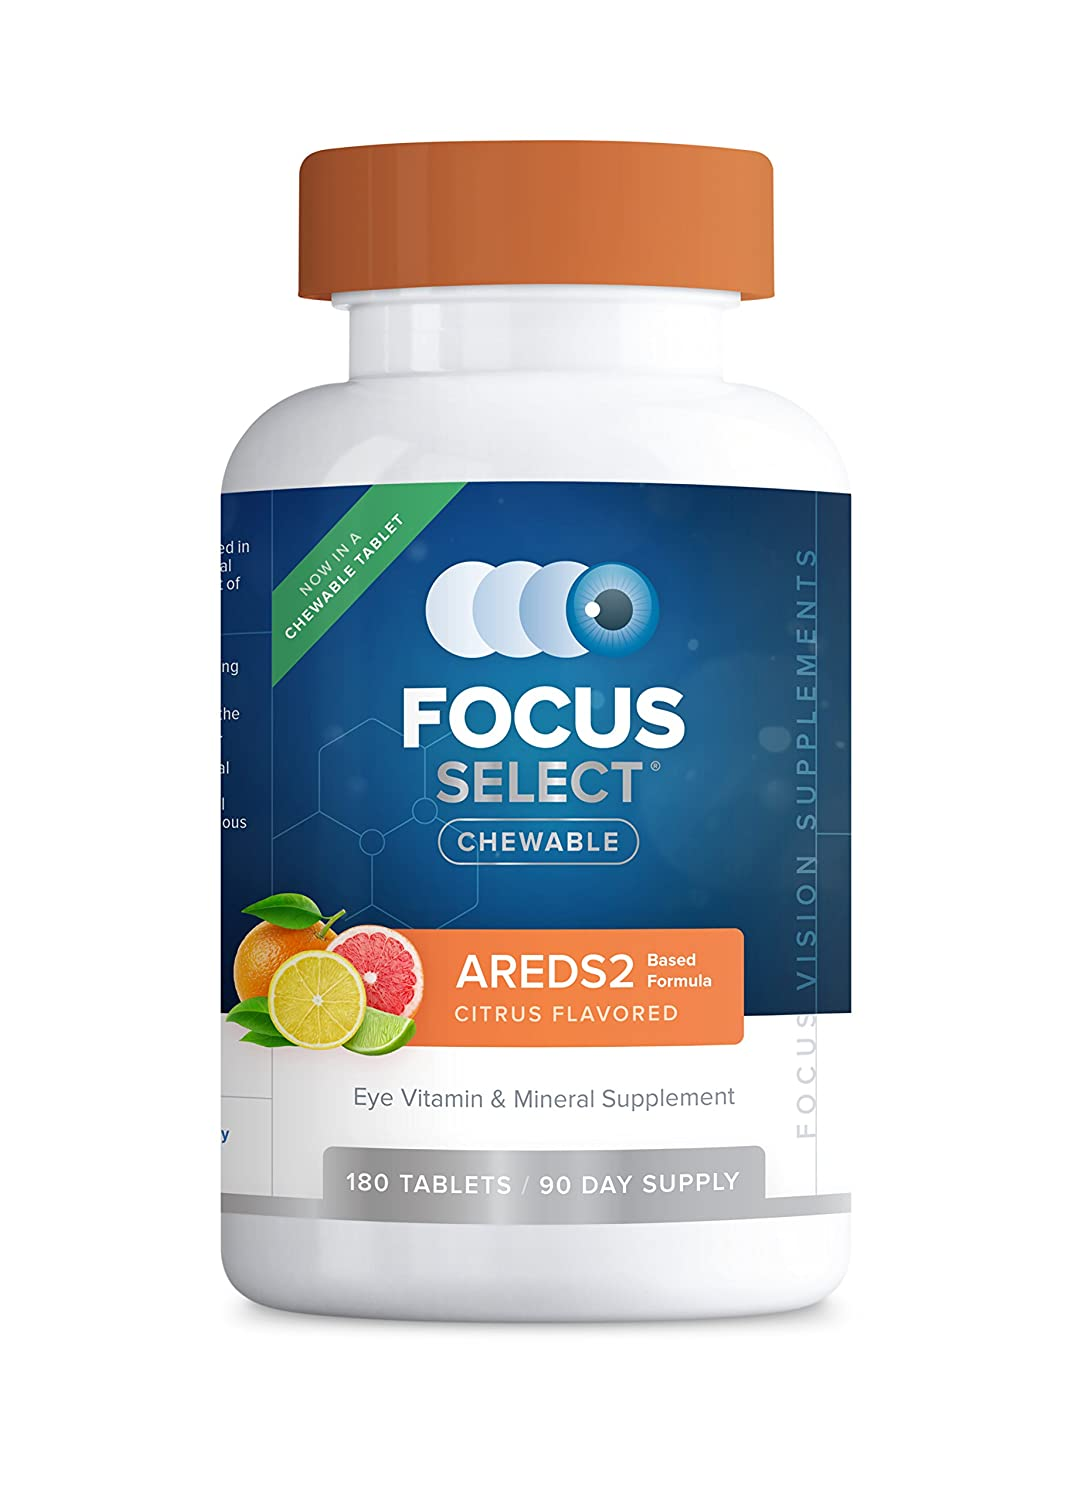 Focus Select AREDS2 Chewable Eye Vitamin-Mineral Supplement, 180 ct 90 Day